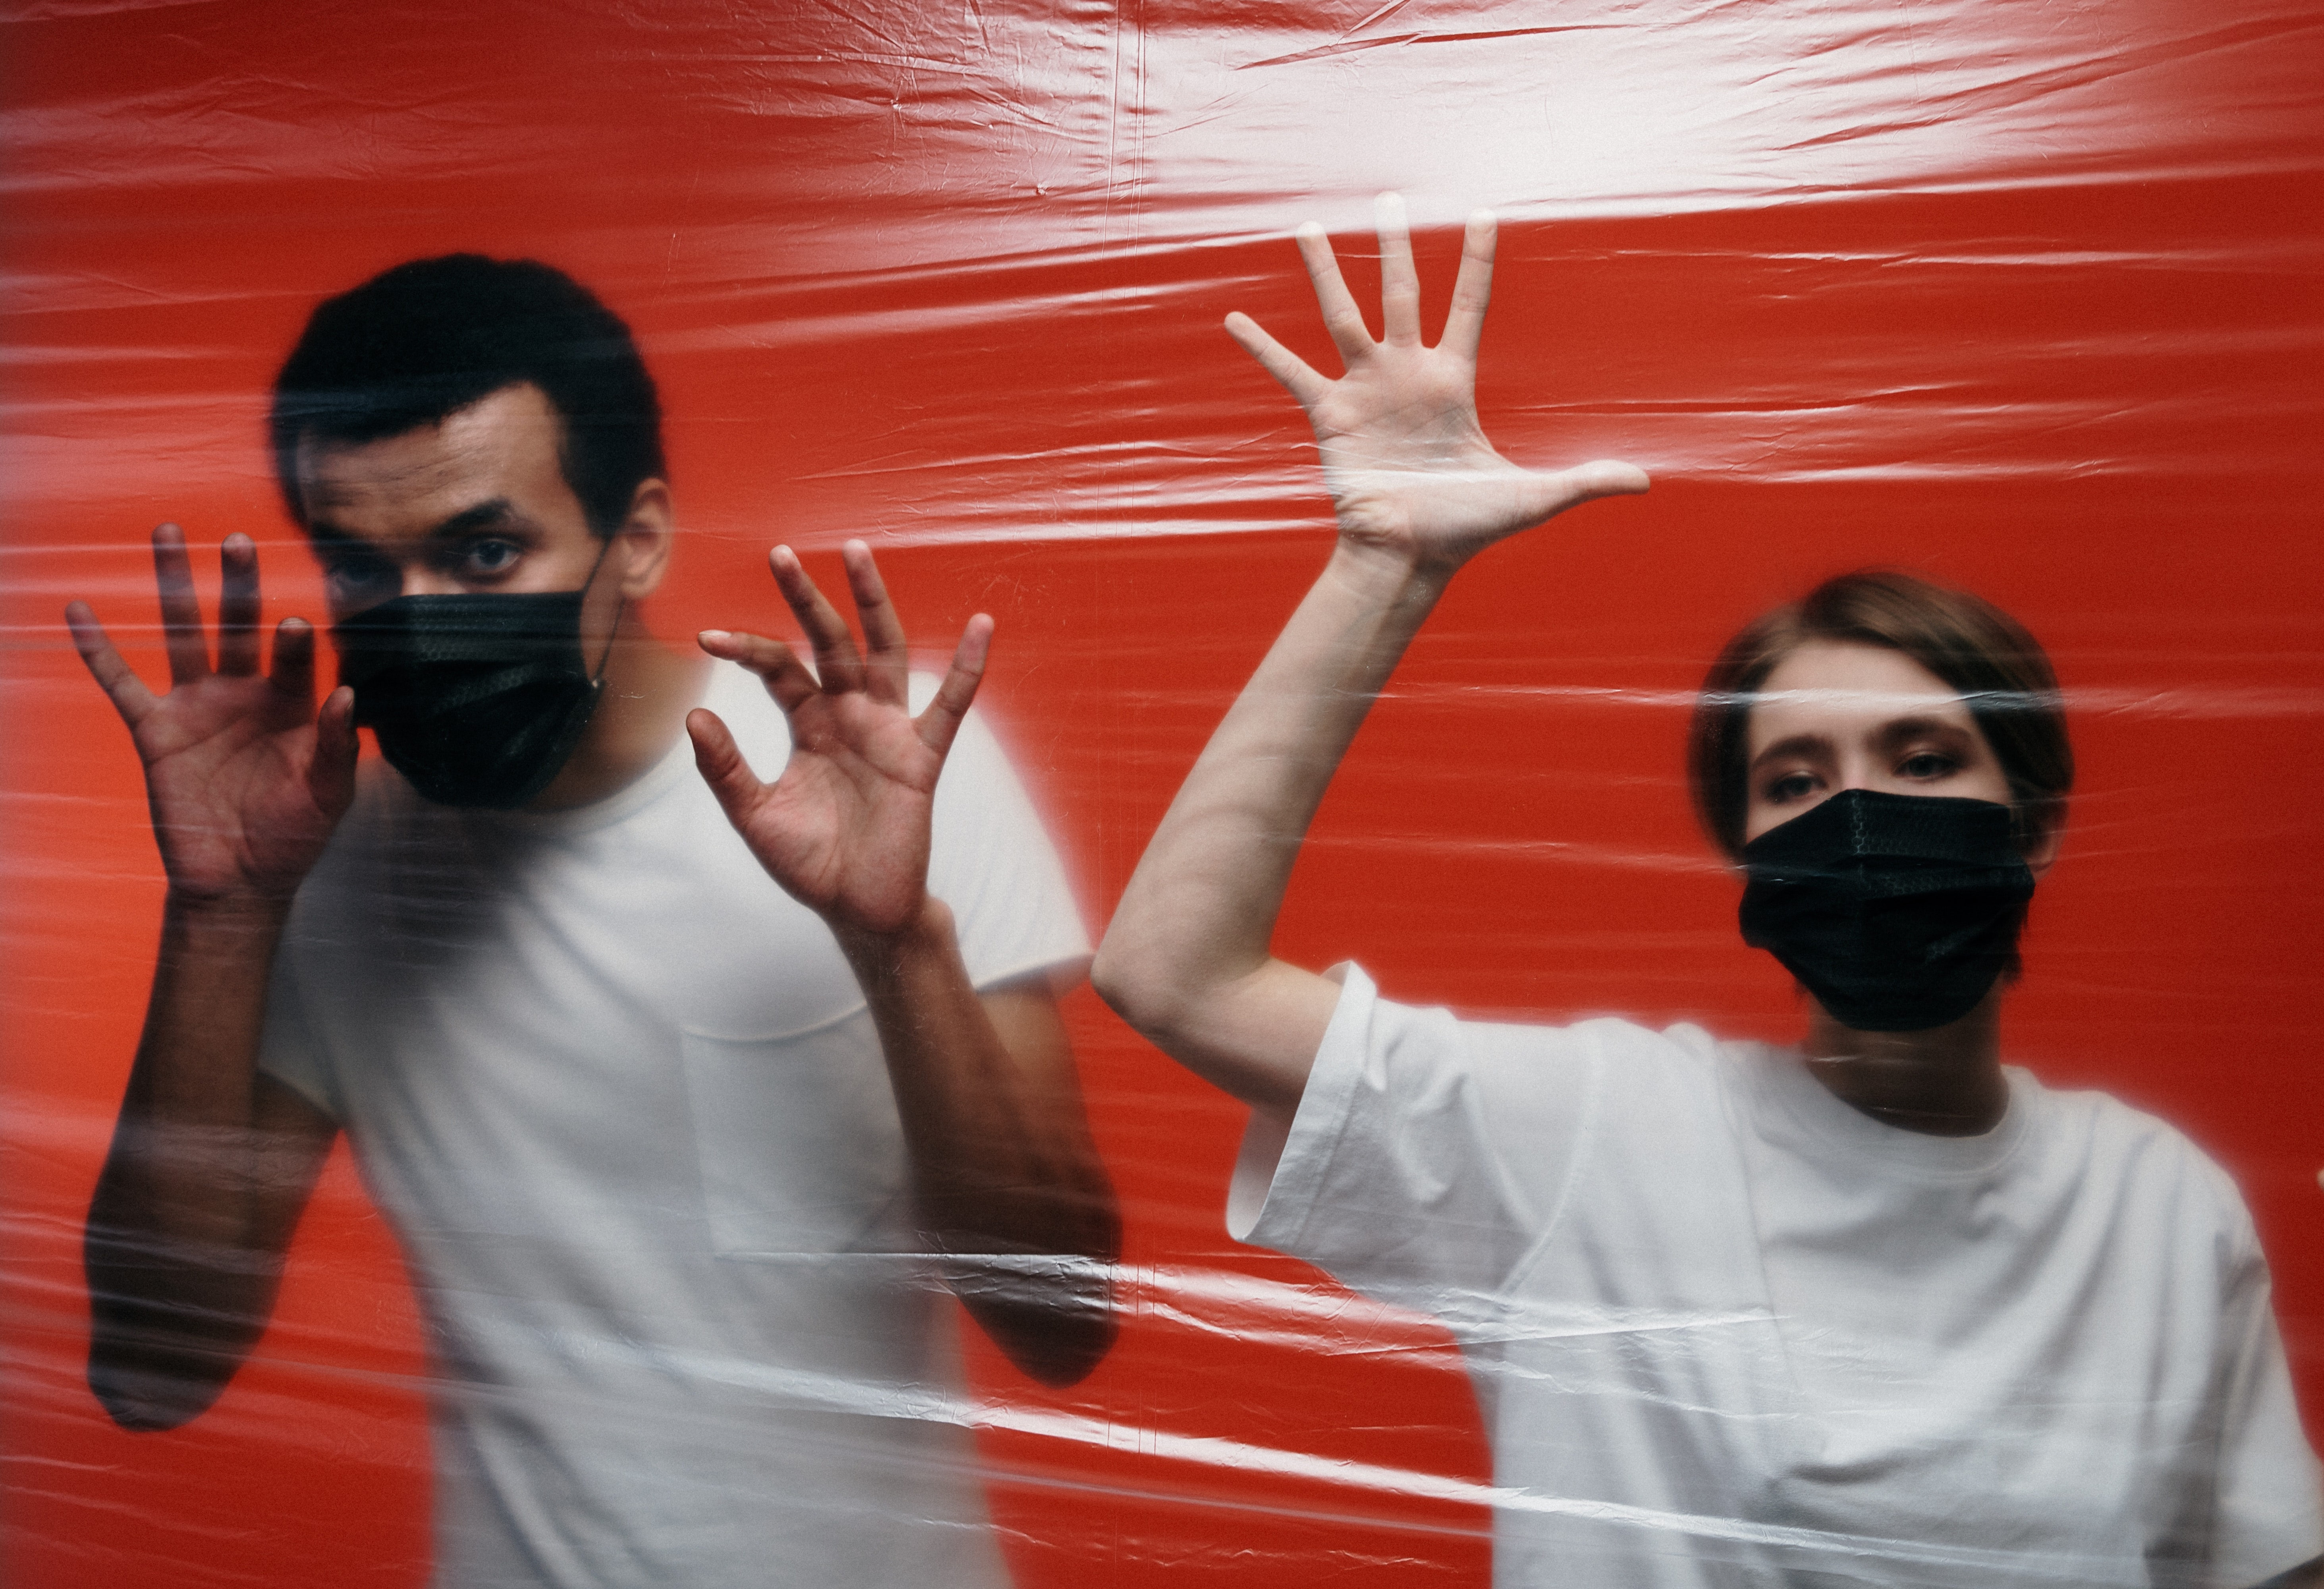 couple-in-quarantine-3952198